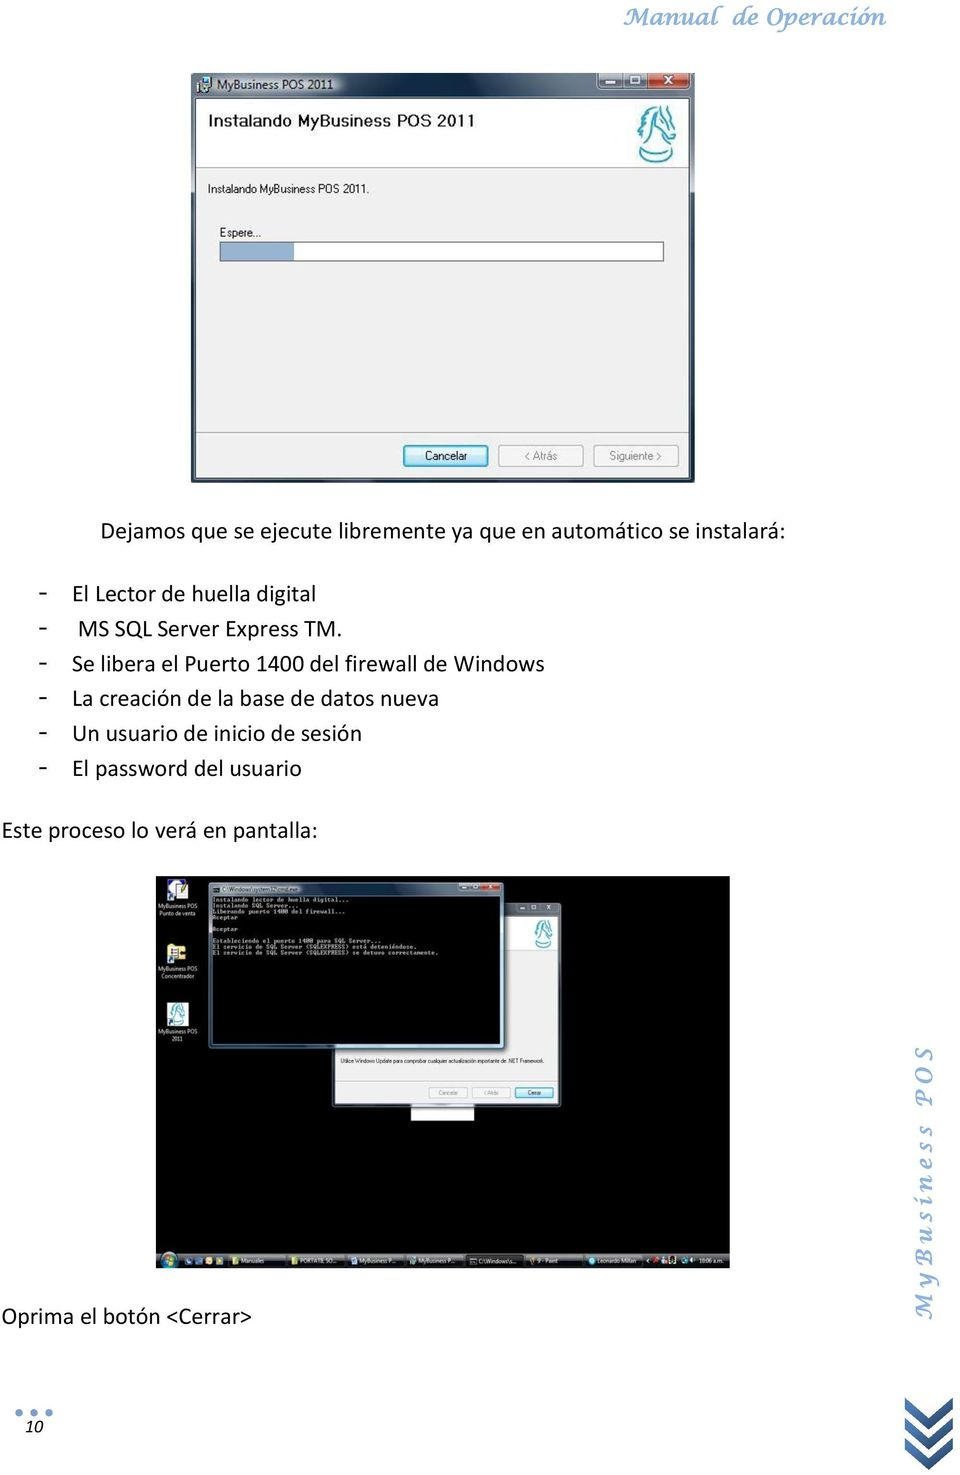 - Se libera el Puerto 1400 del firewall de Windows - La creación de la base de datos